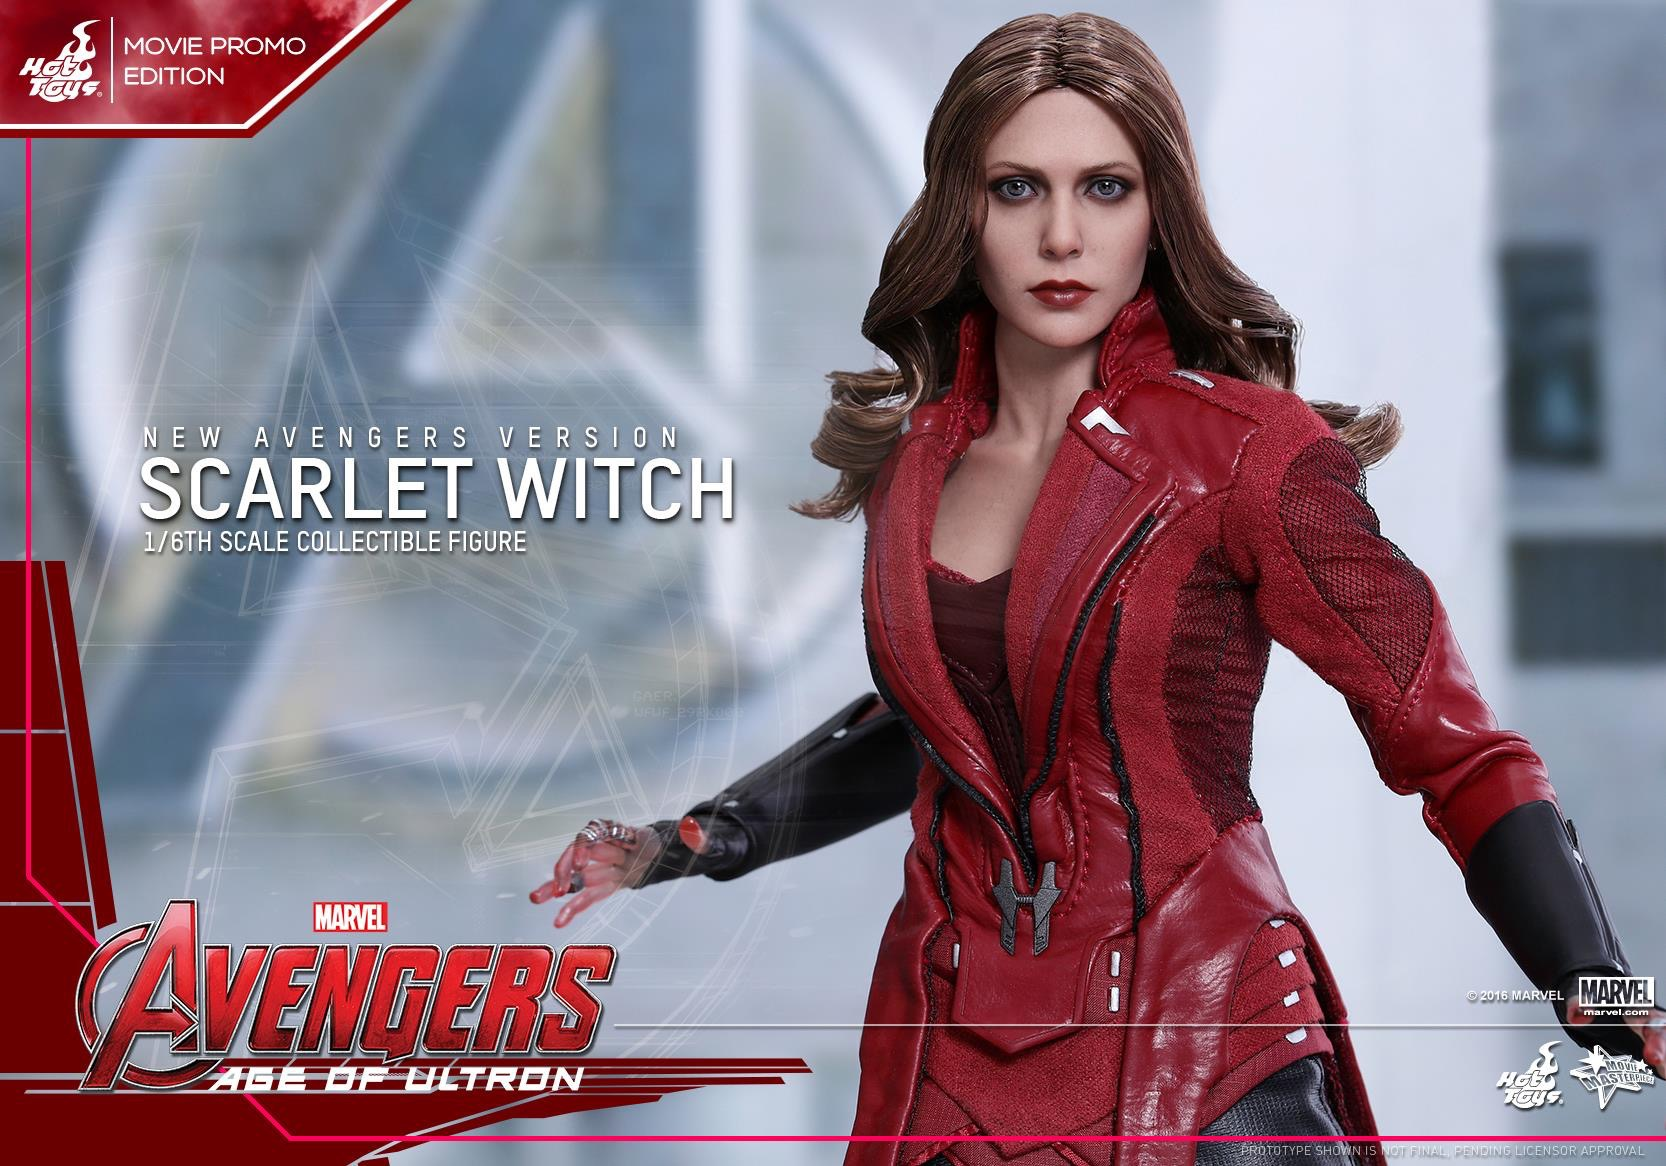 AVENGERS 2 : AGE OF ULTRON - SCARLET WITCH (MM$357) 160415024943483572